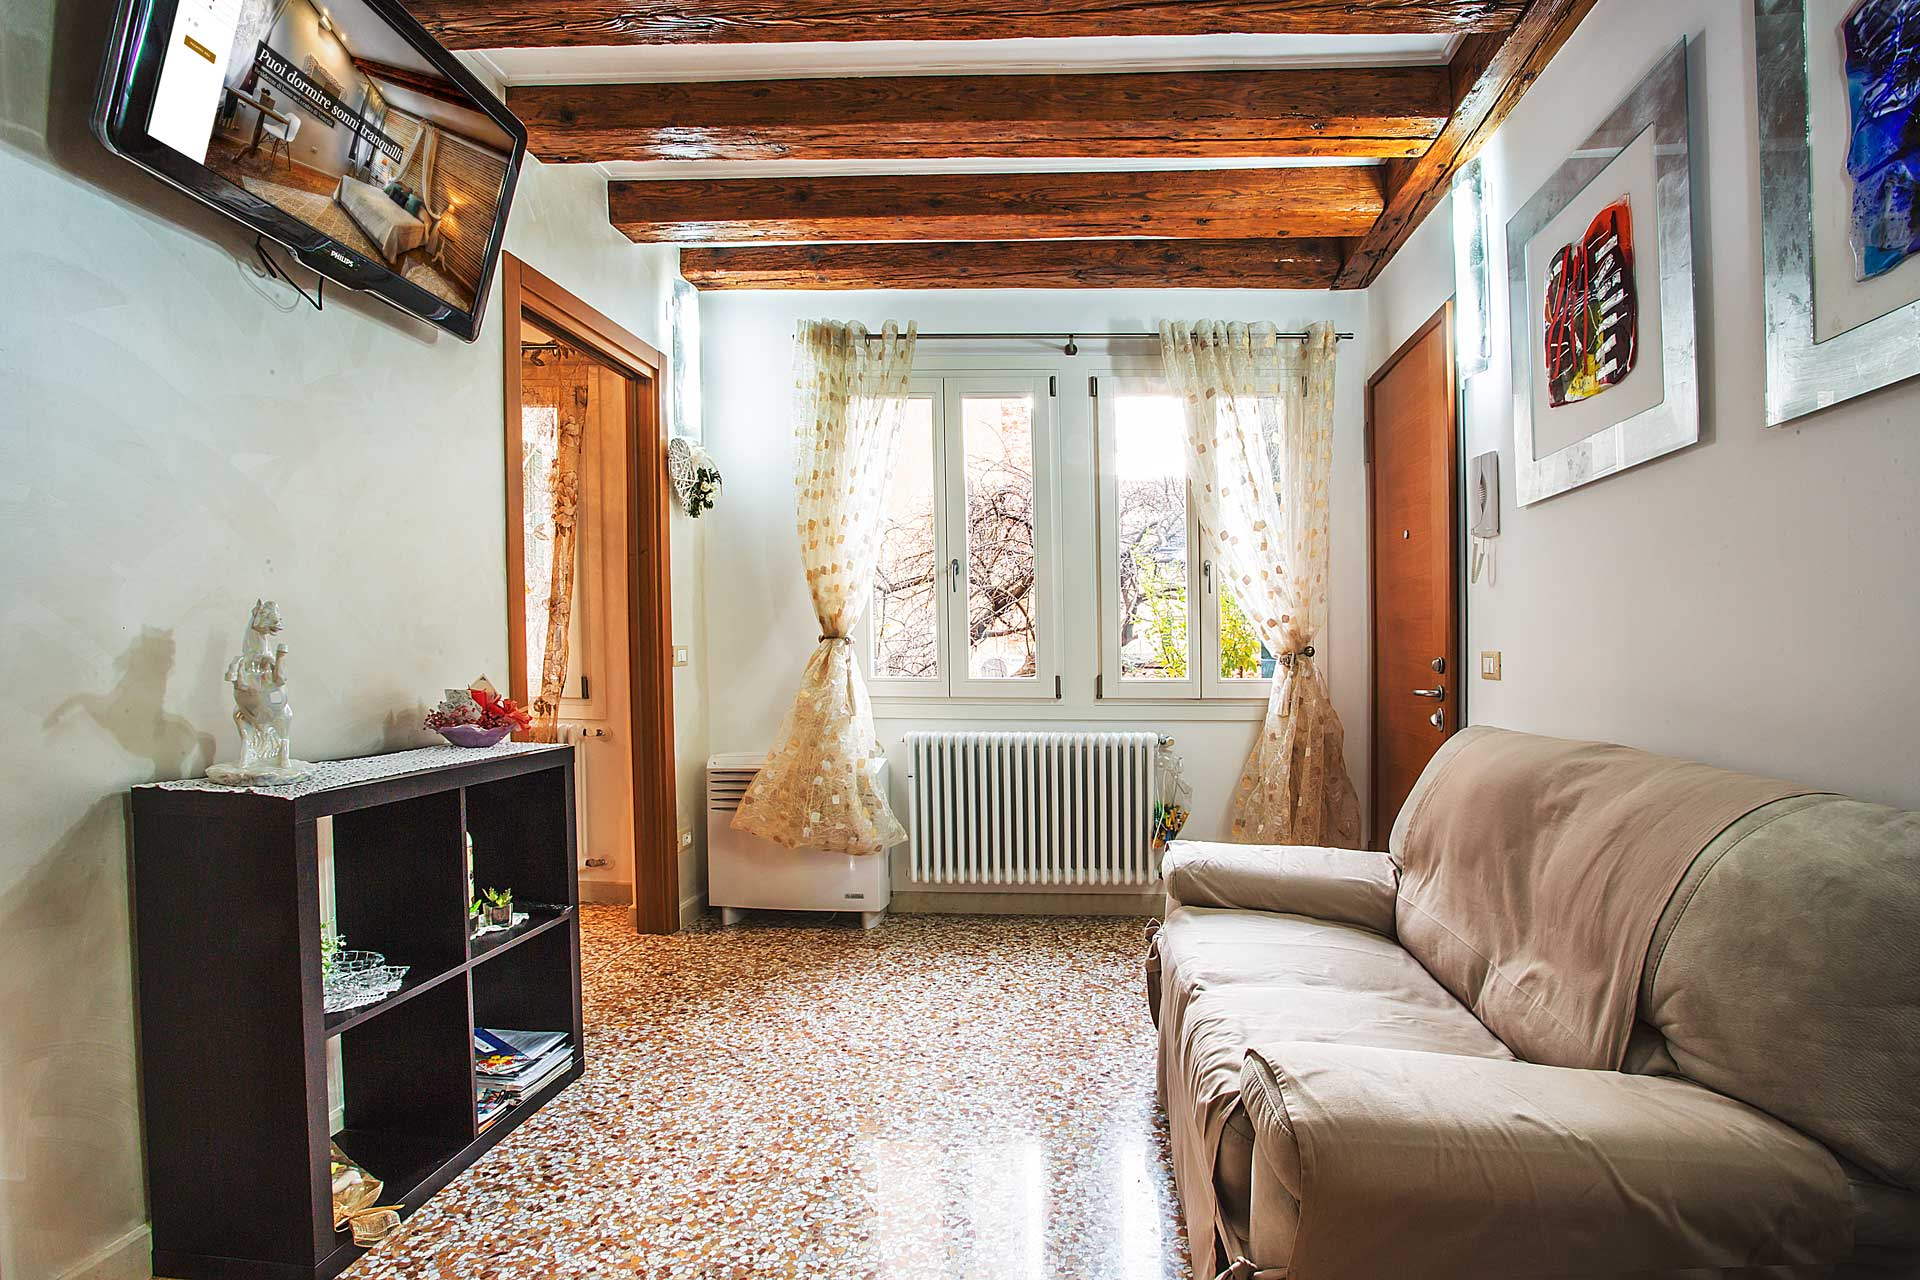 Tosca - Venice Dream House Apartments